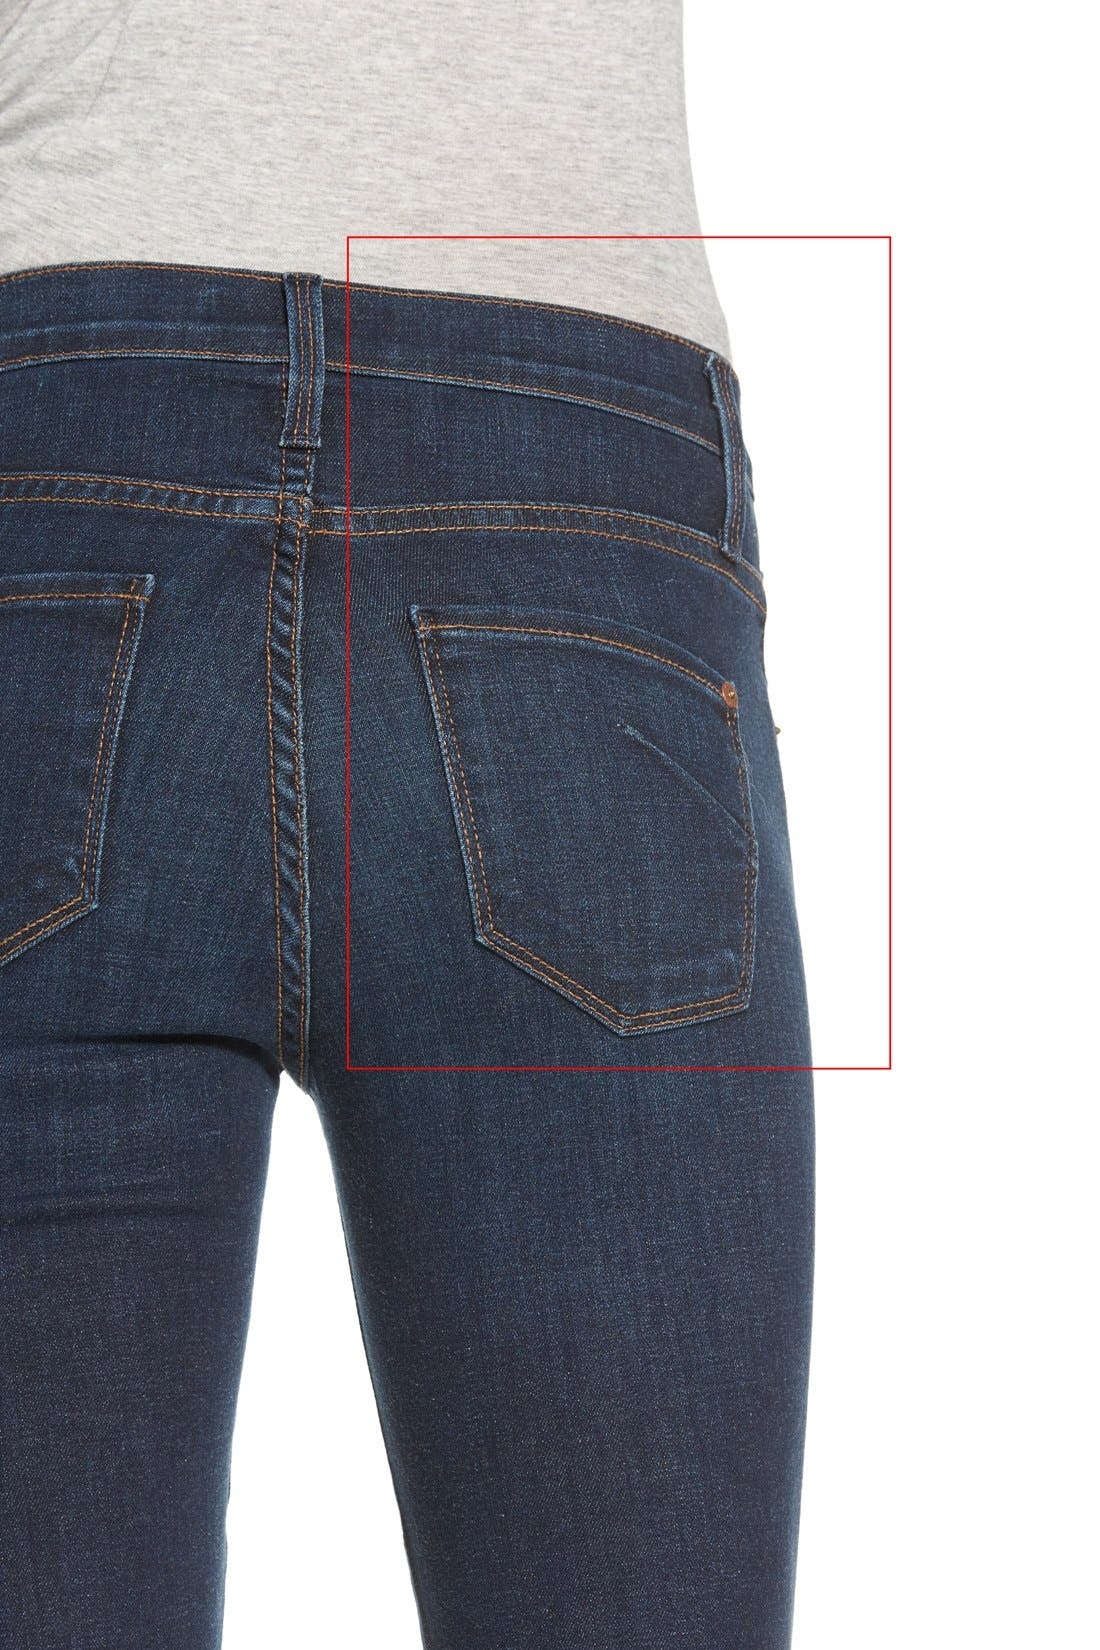 Alternate Image 4  - 7 For All Mankind® 'Tailorless Ginger' High Rise Flare Jeans (Royal Broken Twill) (Short)